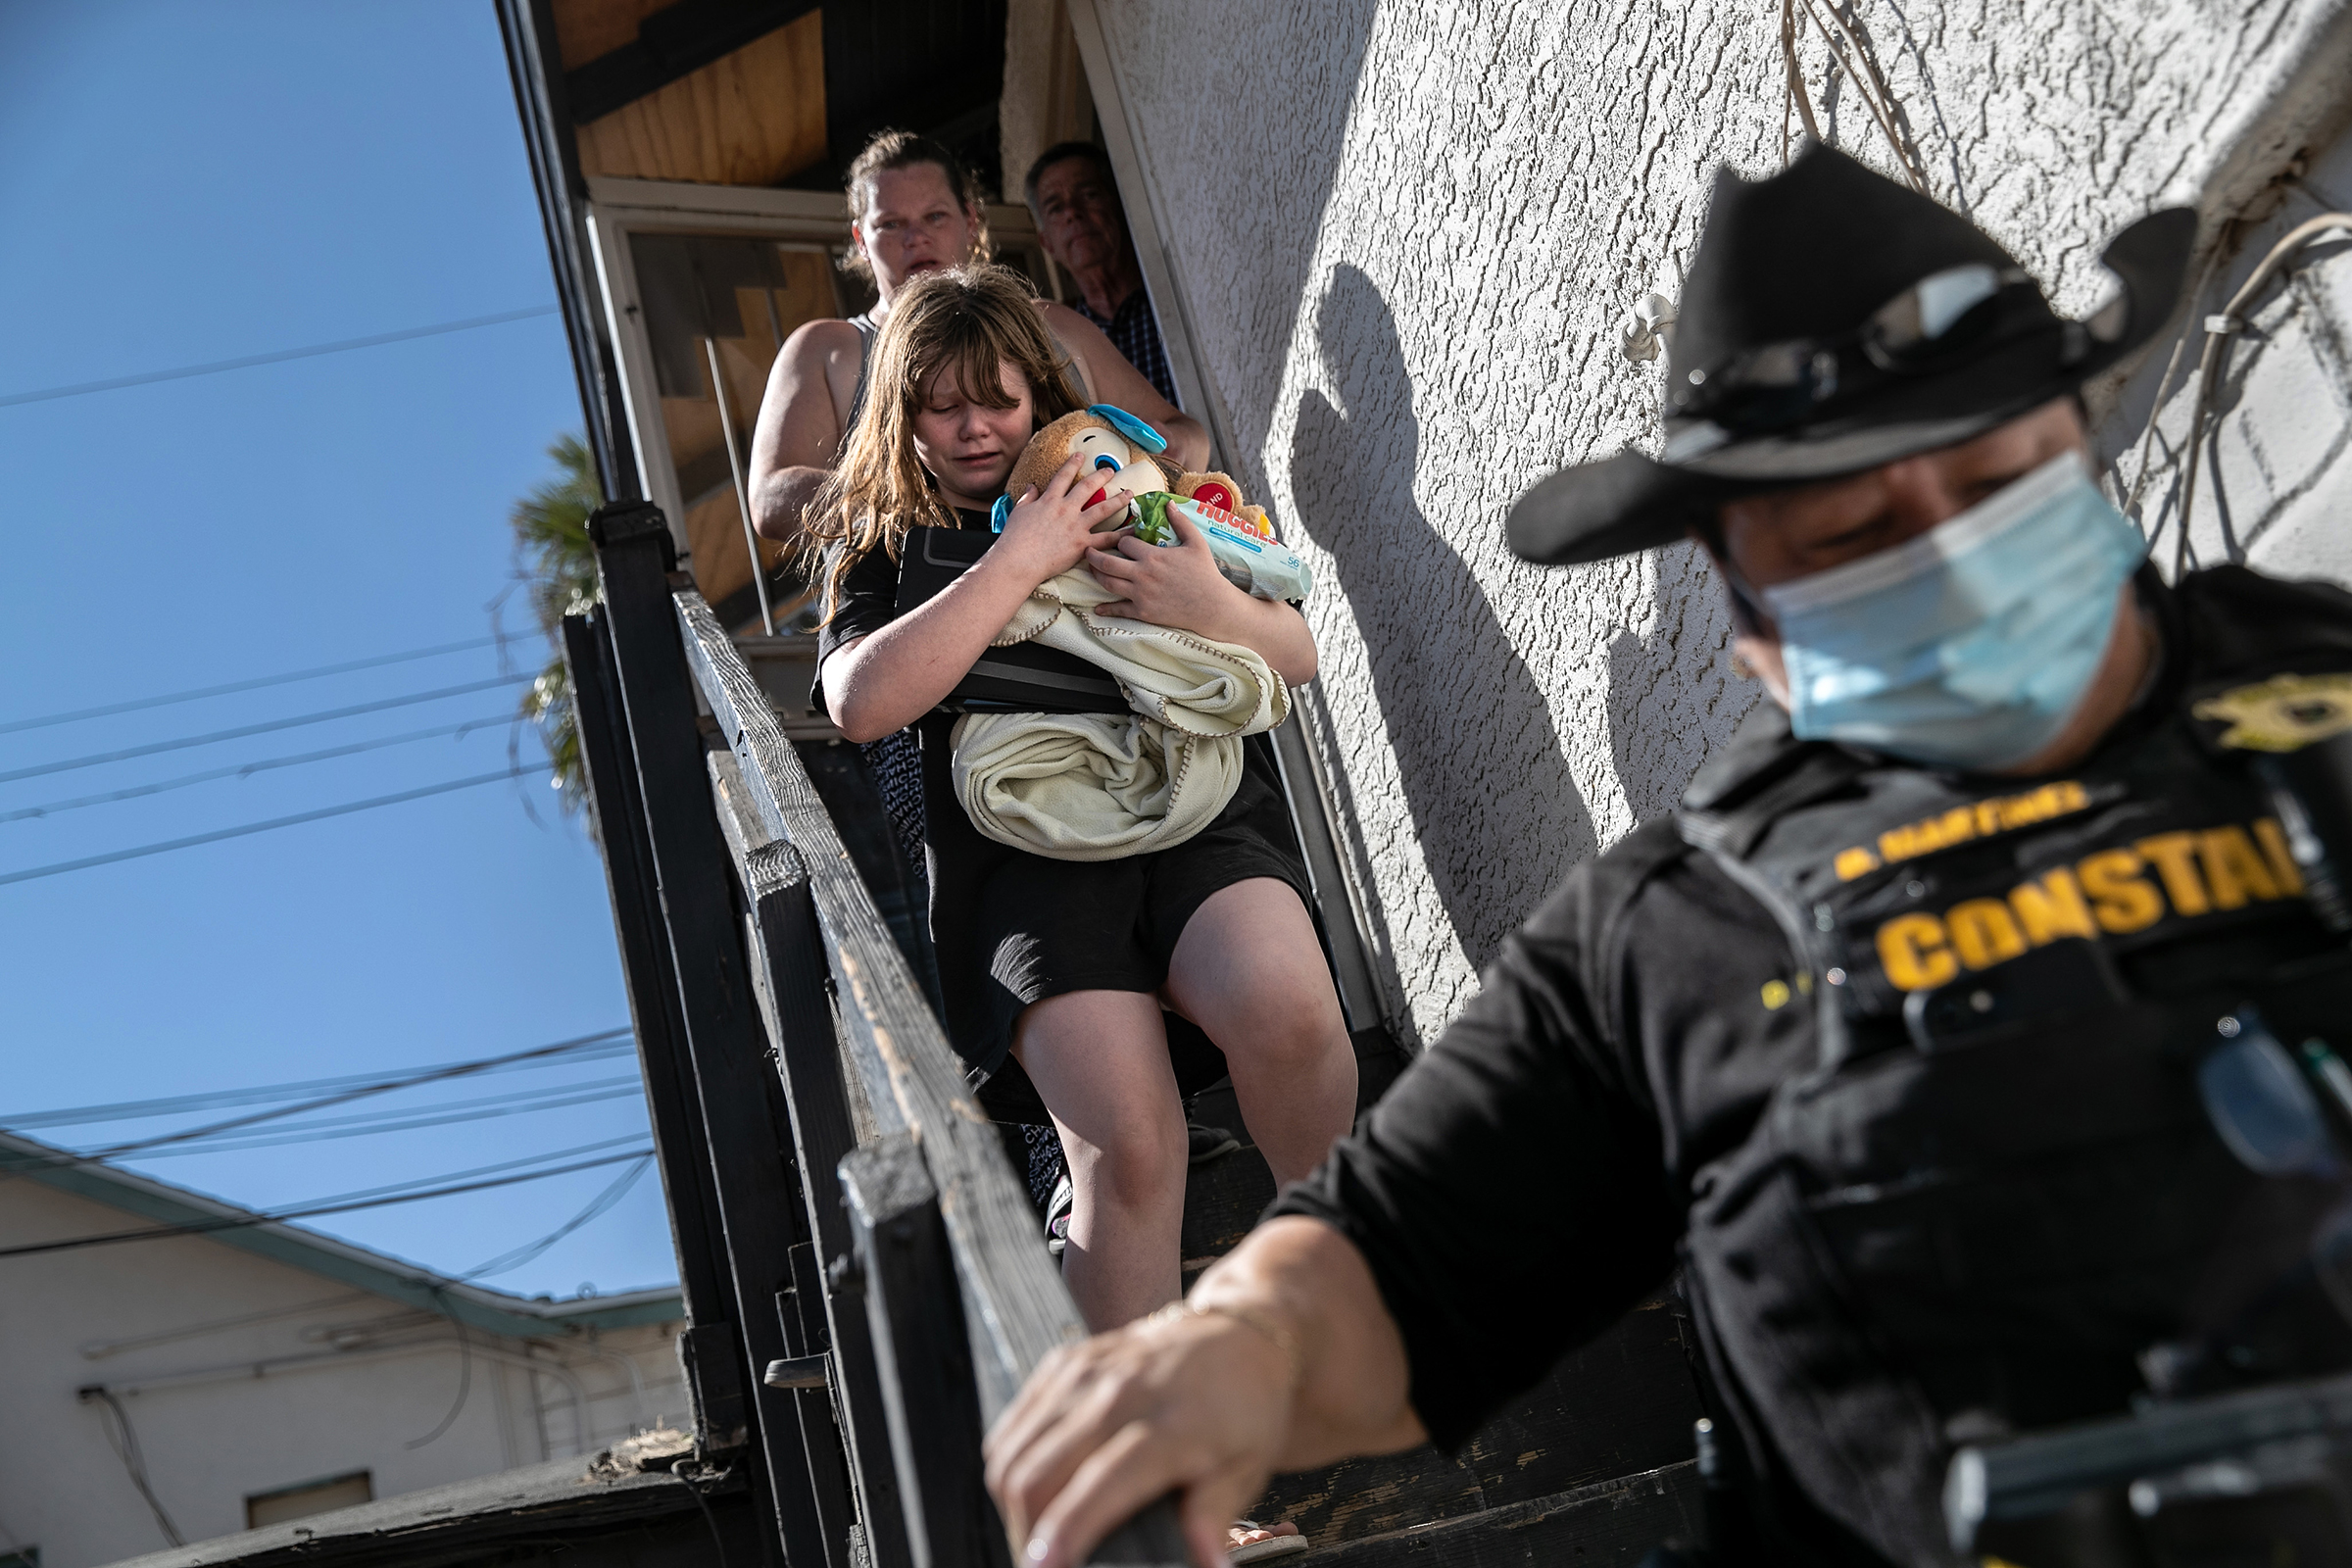 Maricopa County Constable Darlene Martinez escorts a family out of their apartment after serving an eviction order for non-payment in Phoenix, Ariz., on Sept. 30. Thousands of court-ordered evictions continued nationwide despite a CDC moratorium for renters impacted by the pandemic.